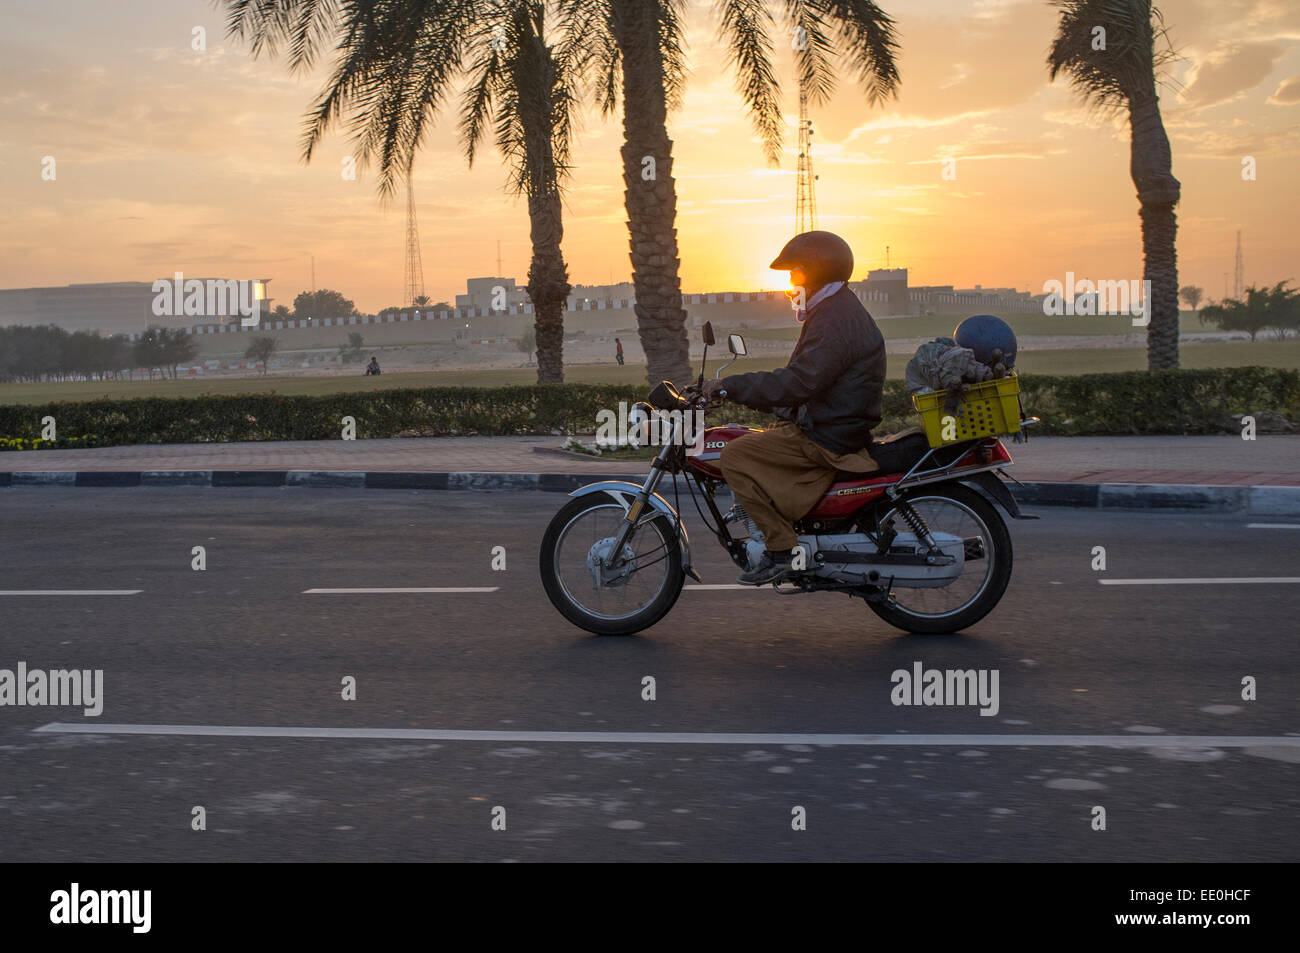 A migrant worker heads for work on a motorbike in Doha, Qatar at sunrise - Stock Image